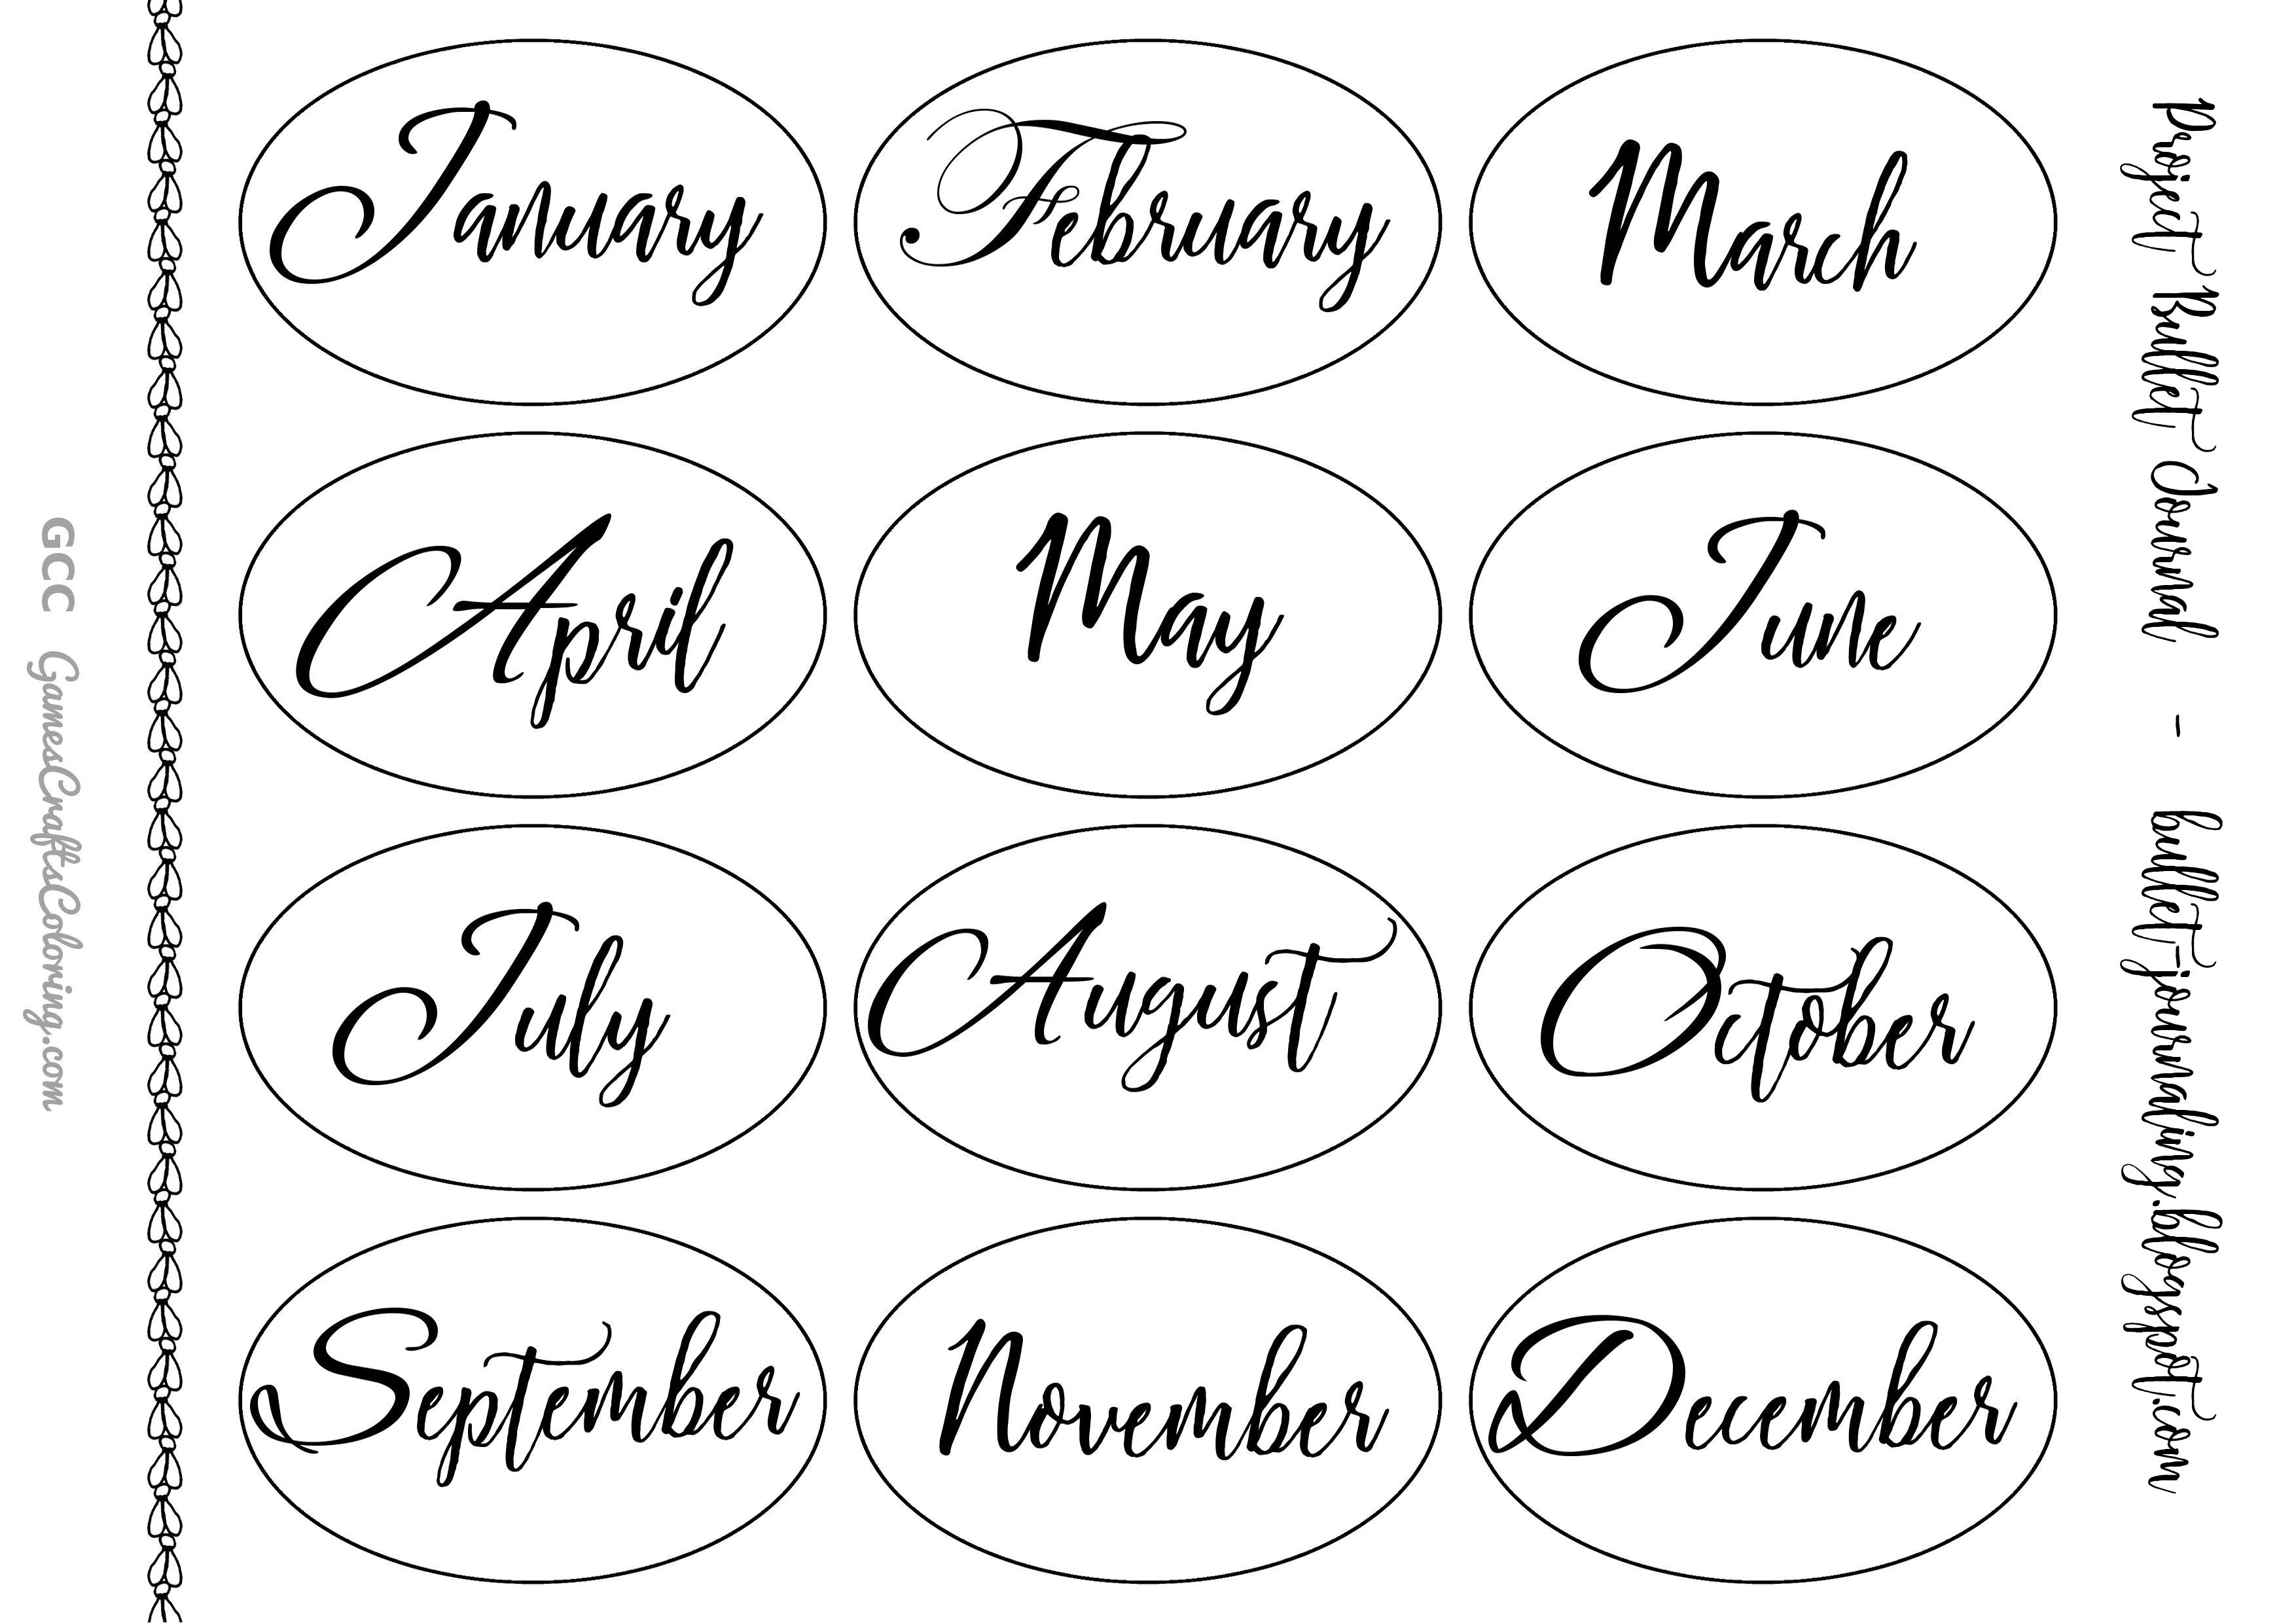 Free Printables Coloring Pages Cards Calendars .html ... - photo#32